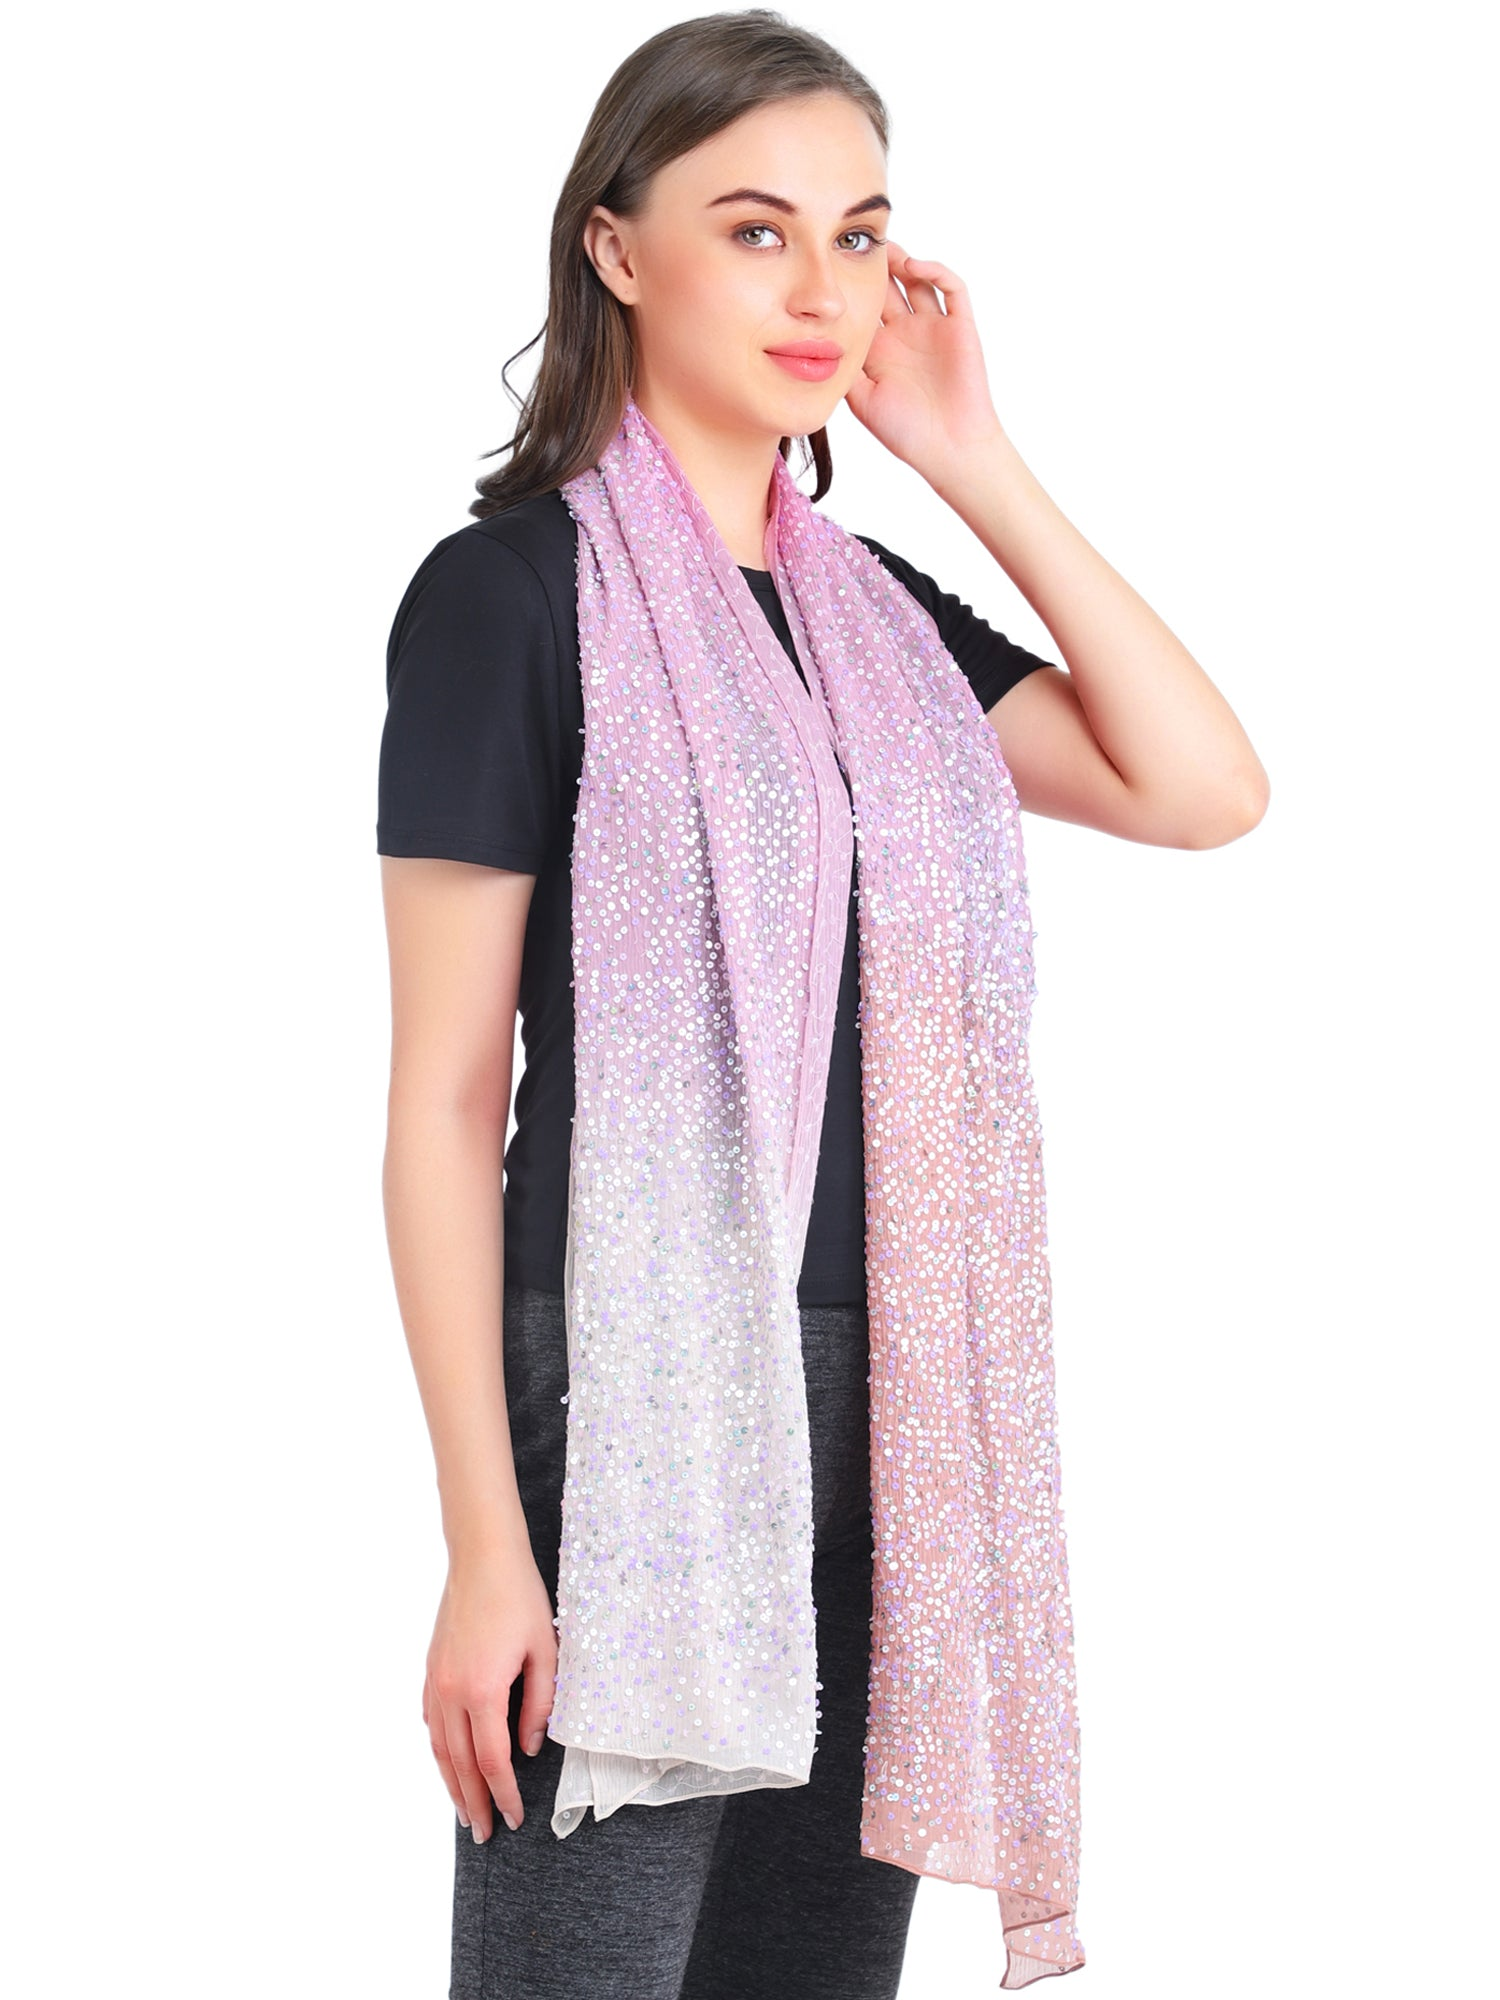 Pashma Fully beaded shaded scarf crafted in Chiffon